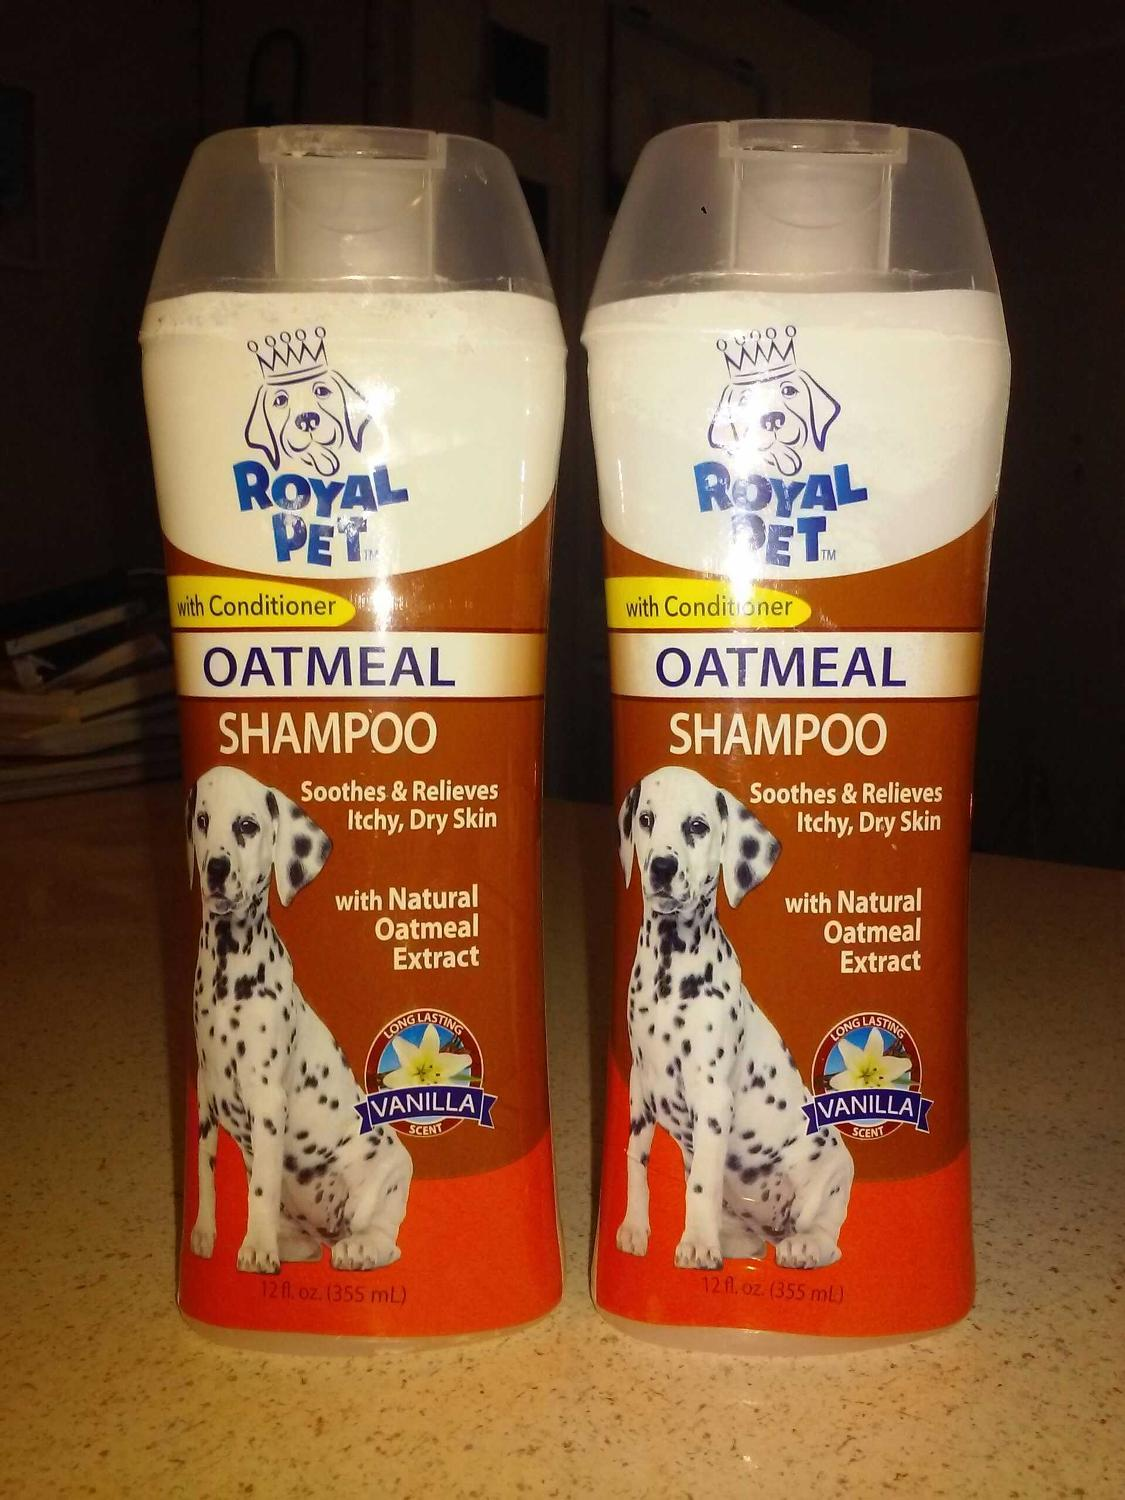 Dogs Natural Oatmeal Extract Shampoo with Conditioner -Vanilla Scent (BRAND  NEW) $3 EACH